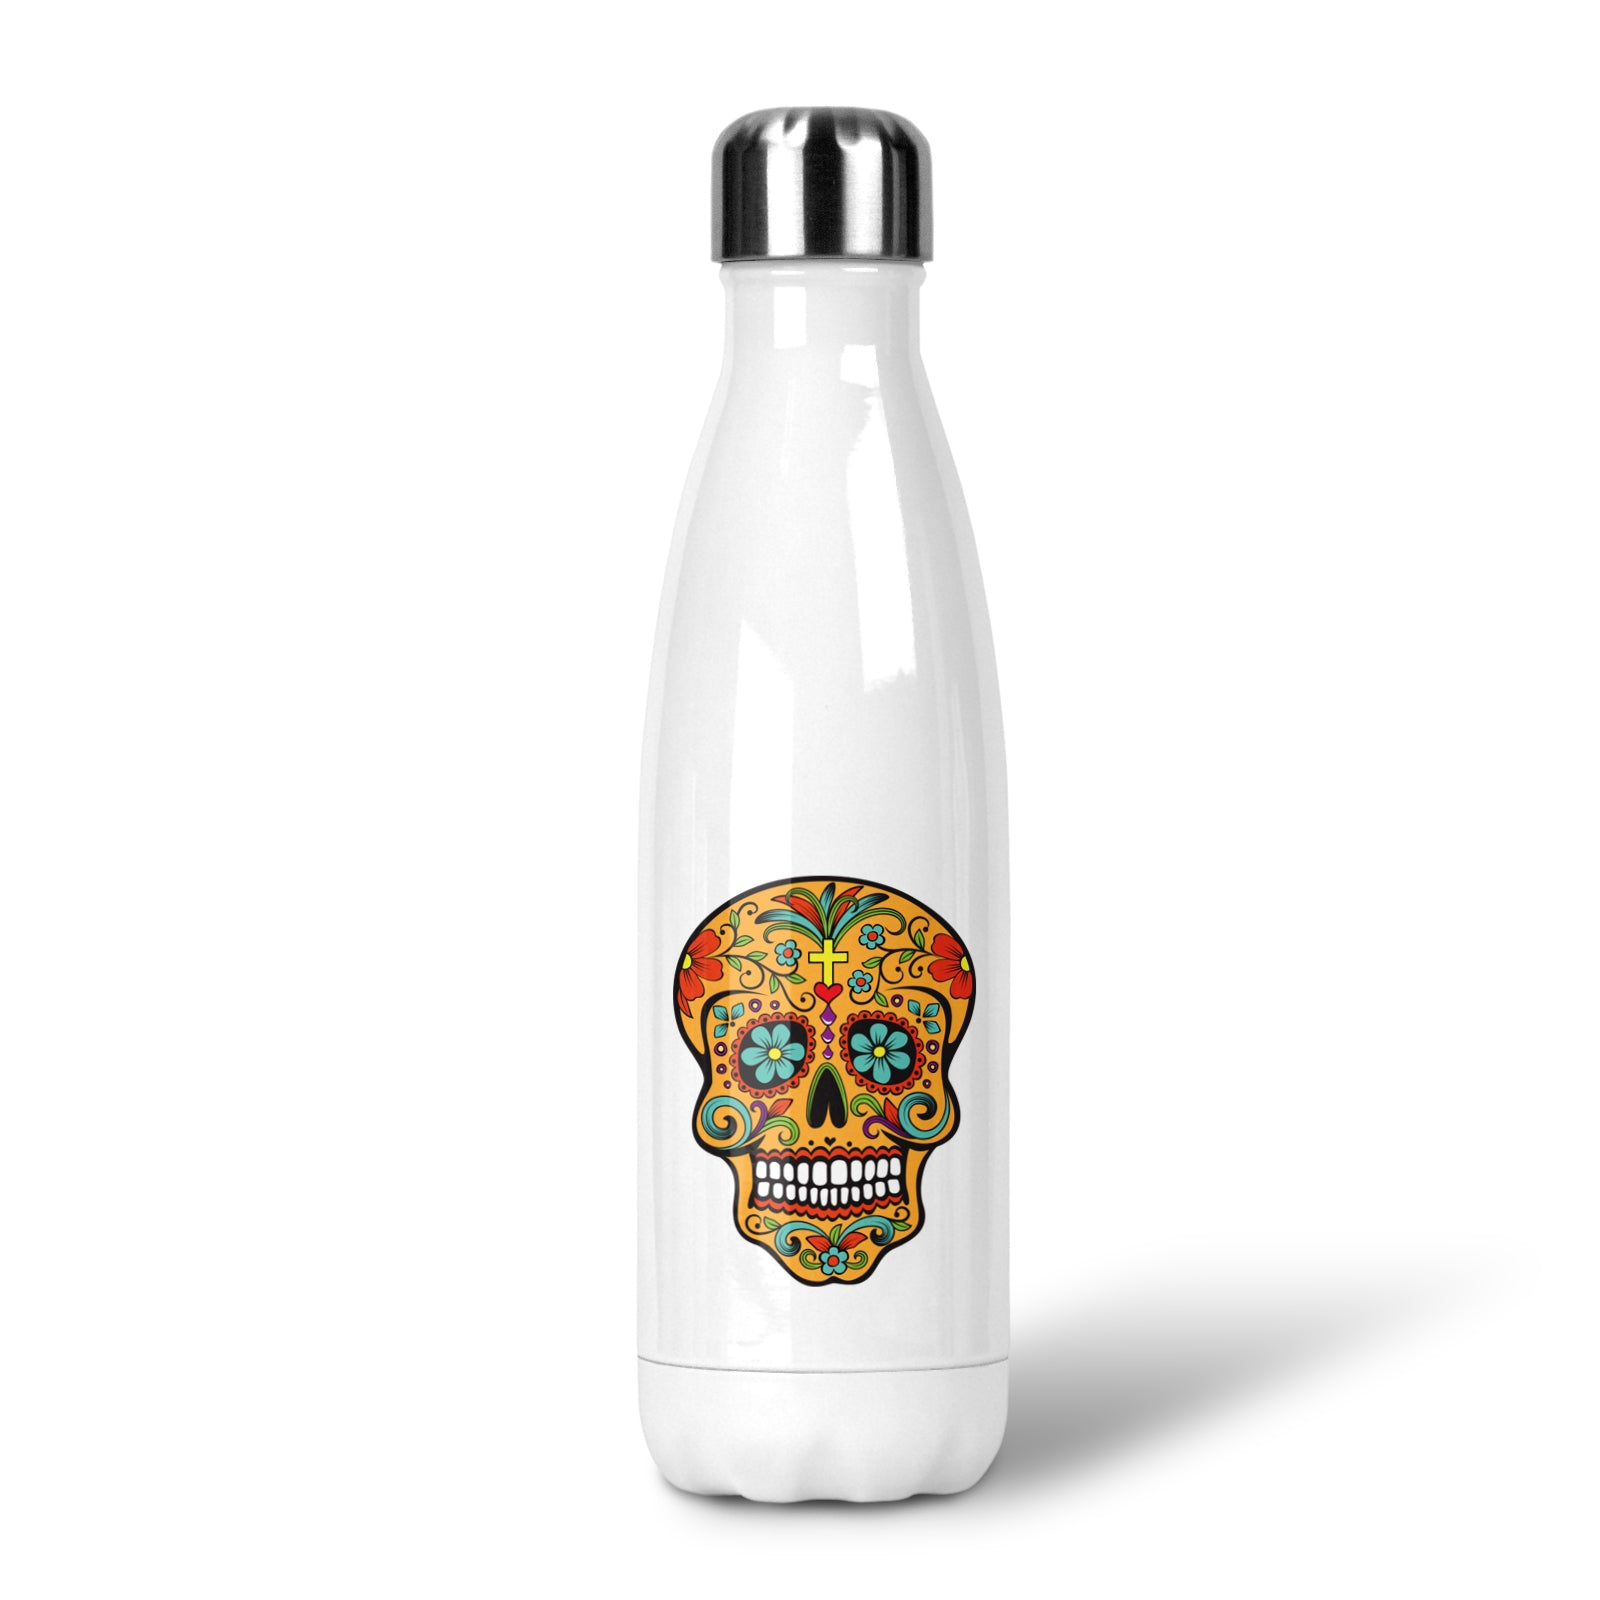 Sugar Skull Stainless Steel Drink Bottle